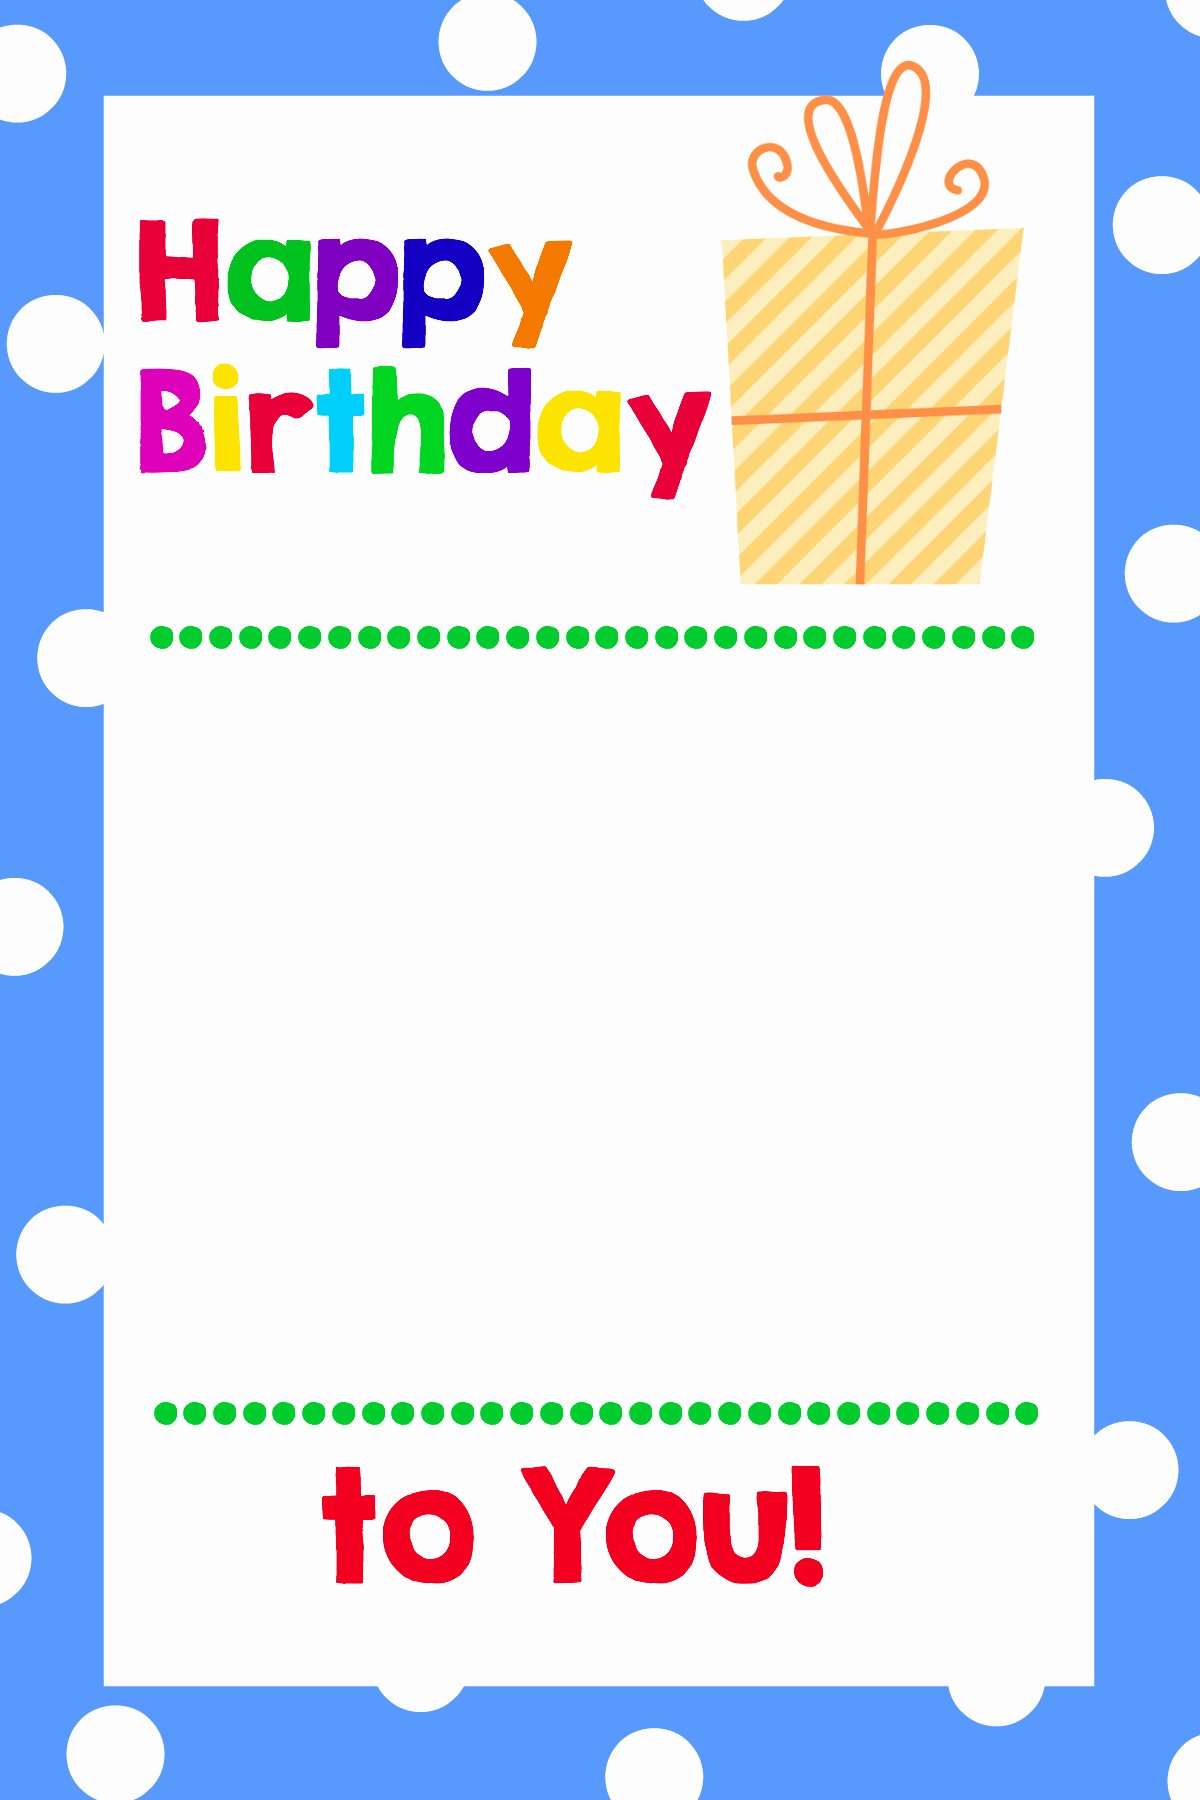 Gift Certificate Template Printable Elegant Free Printable Birthday Cards that Hold Gift Cards